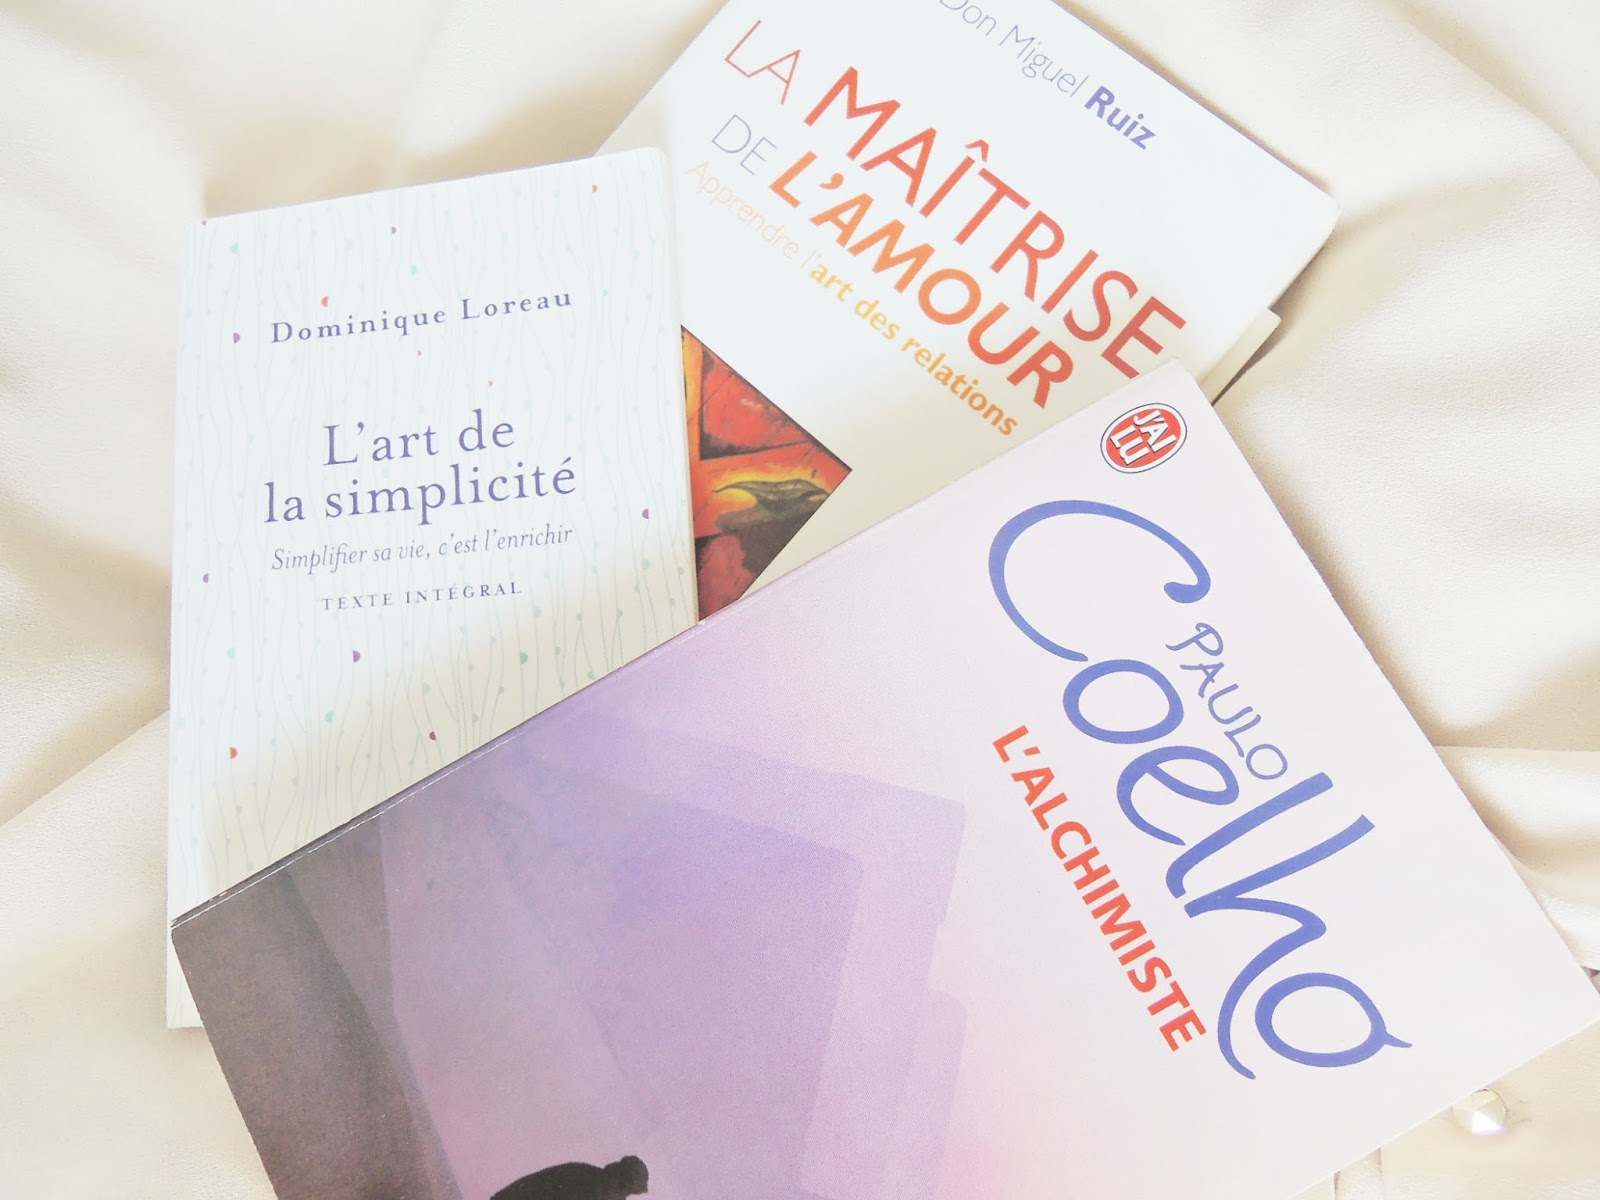 Paul Coelho l'alchimiste, Dominique Loreau, Les accords Toltèques